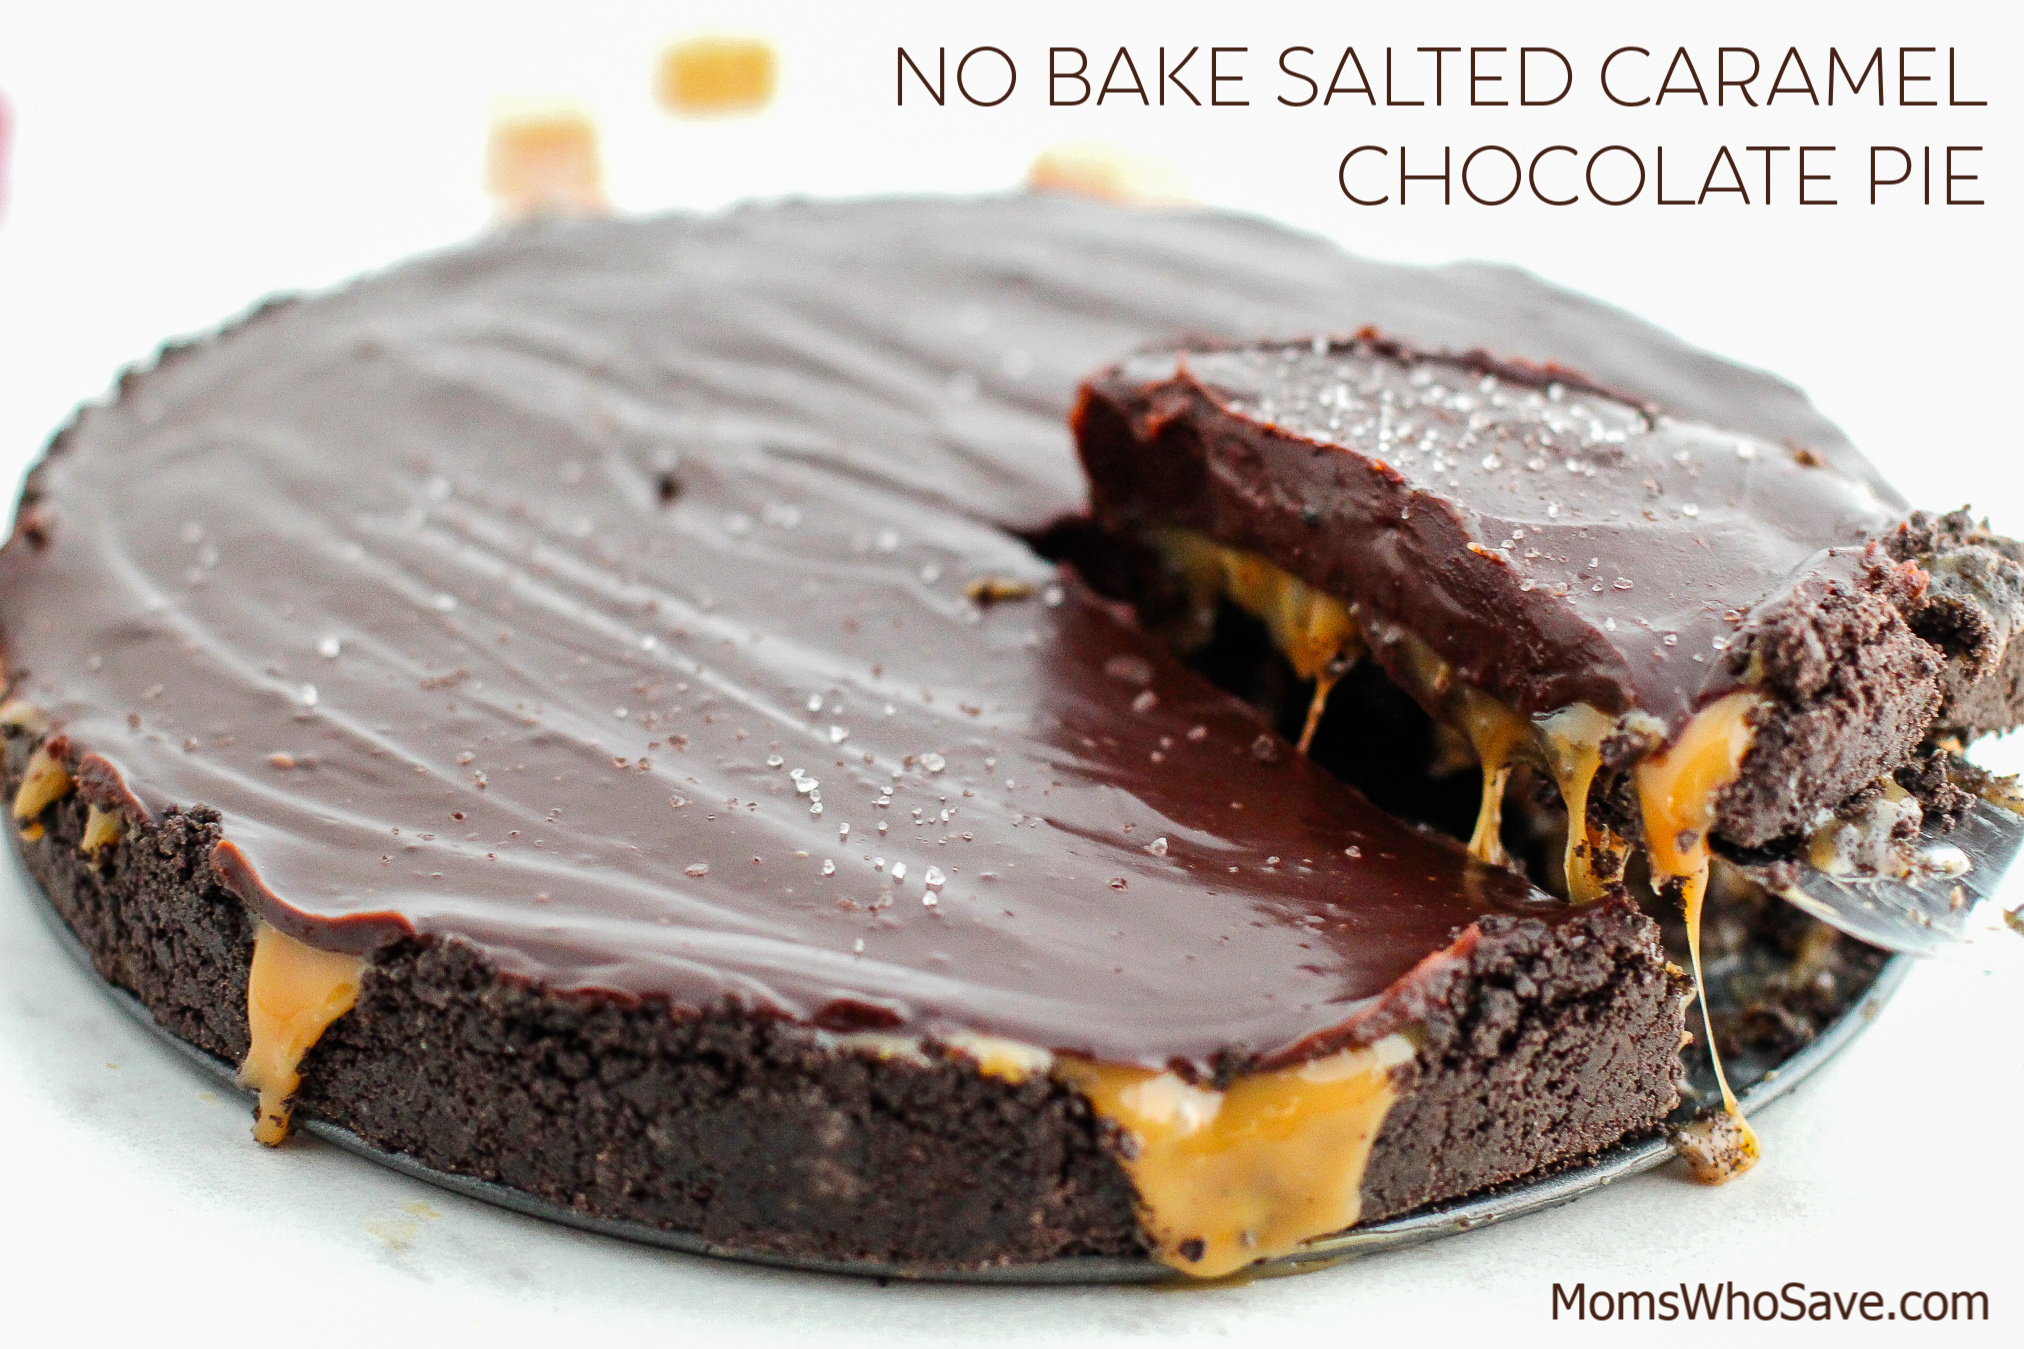 Salted Caramel Chocolate Pie recipe